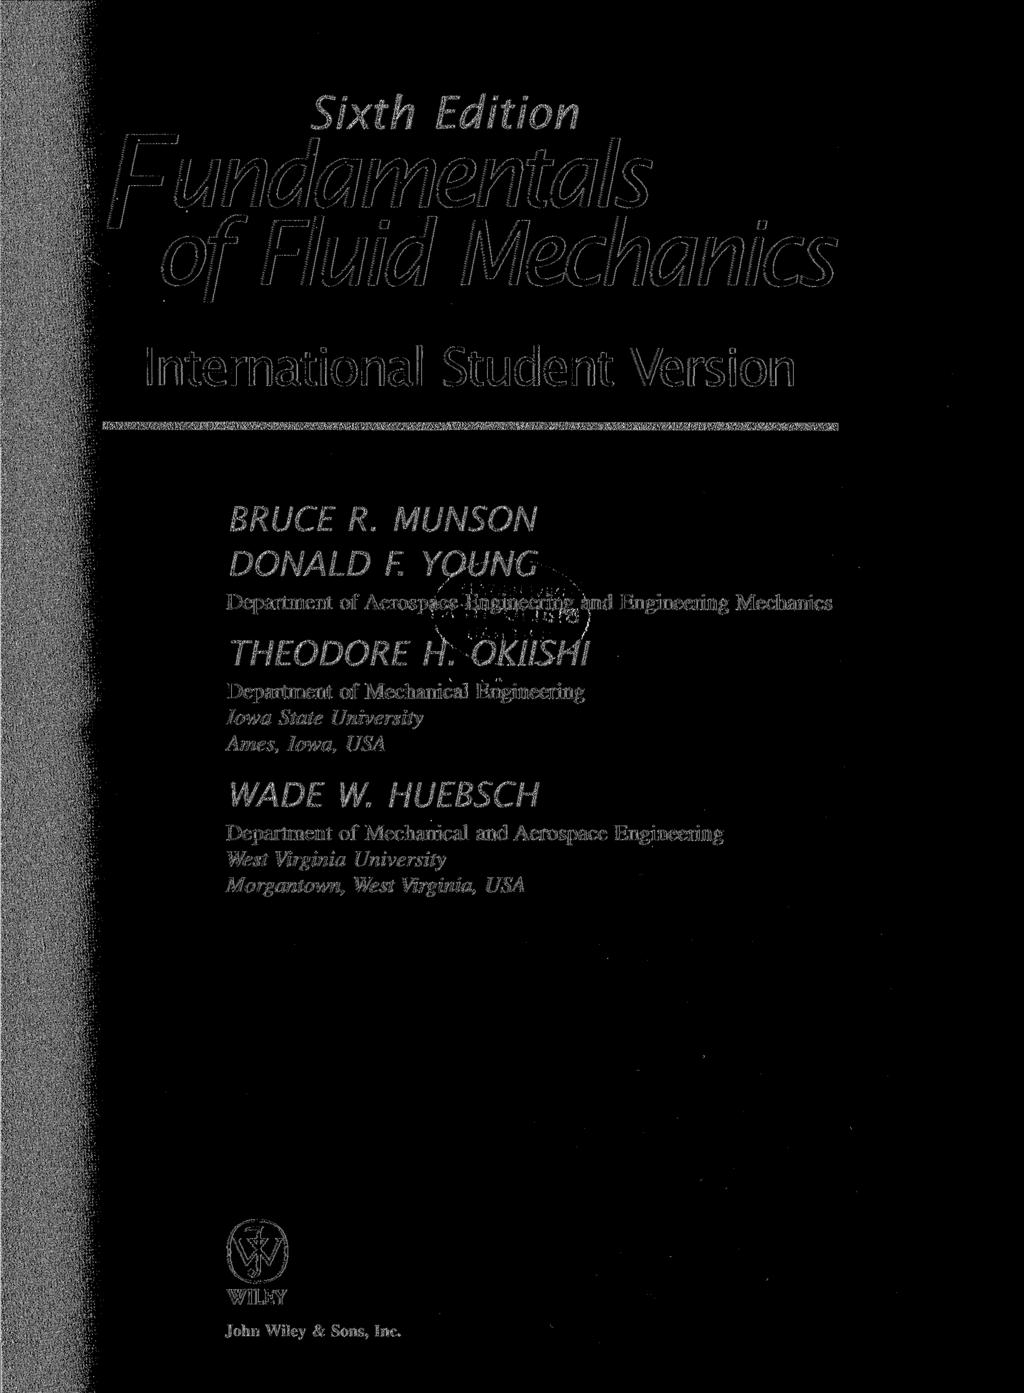 Sixth Edition Fundamentals of Fluid Mechanics International Student Version BRUCE R. MUNSON DONALD F. YOUNG Department of Aerospace Engineering and Engineering Mechanics THEODORE H.